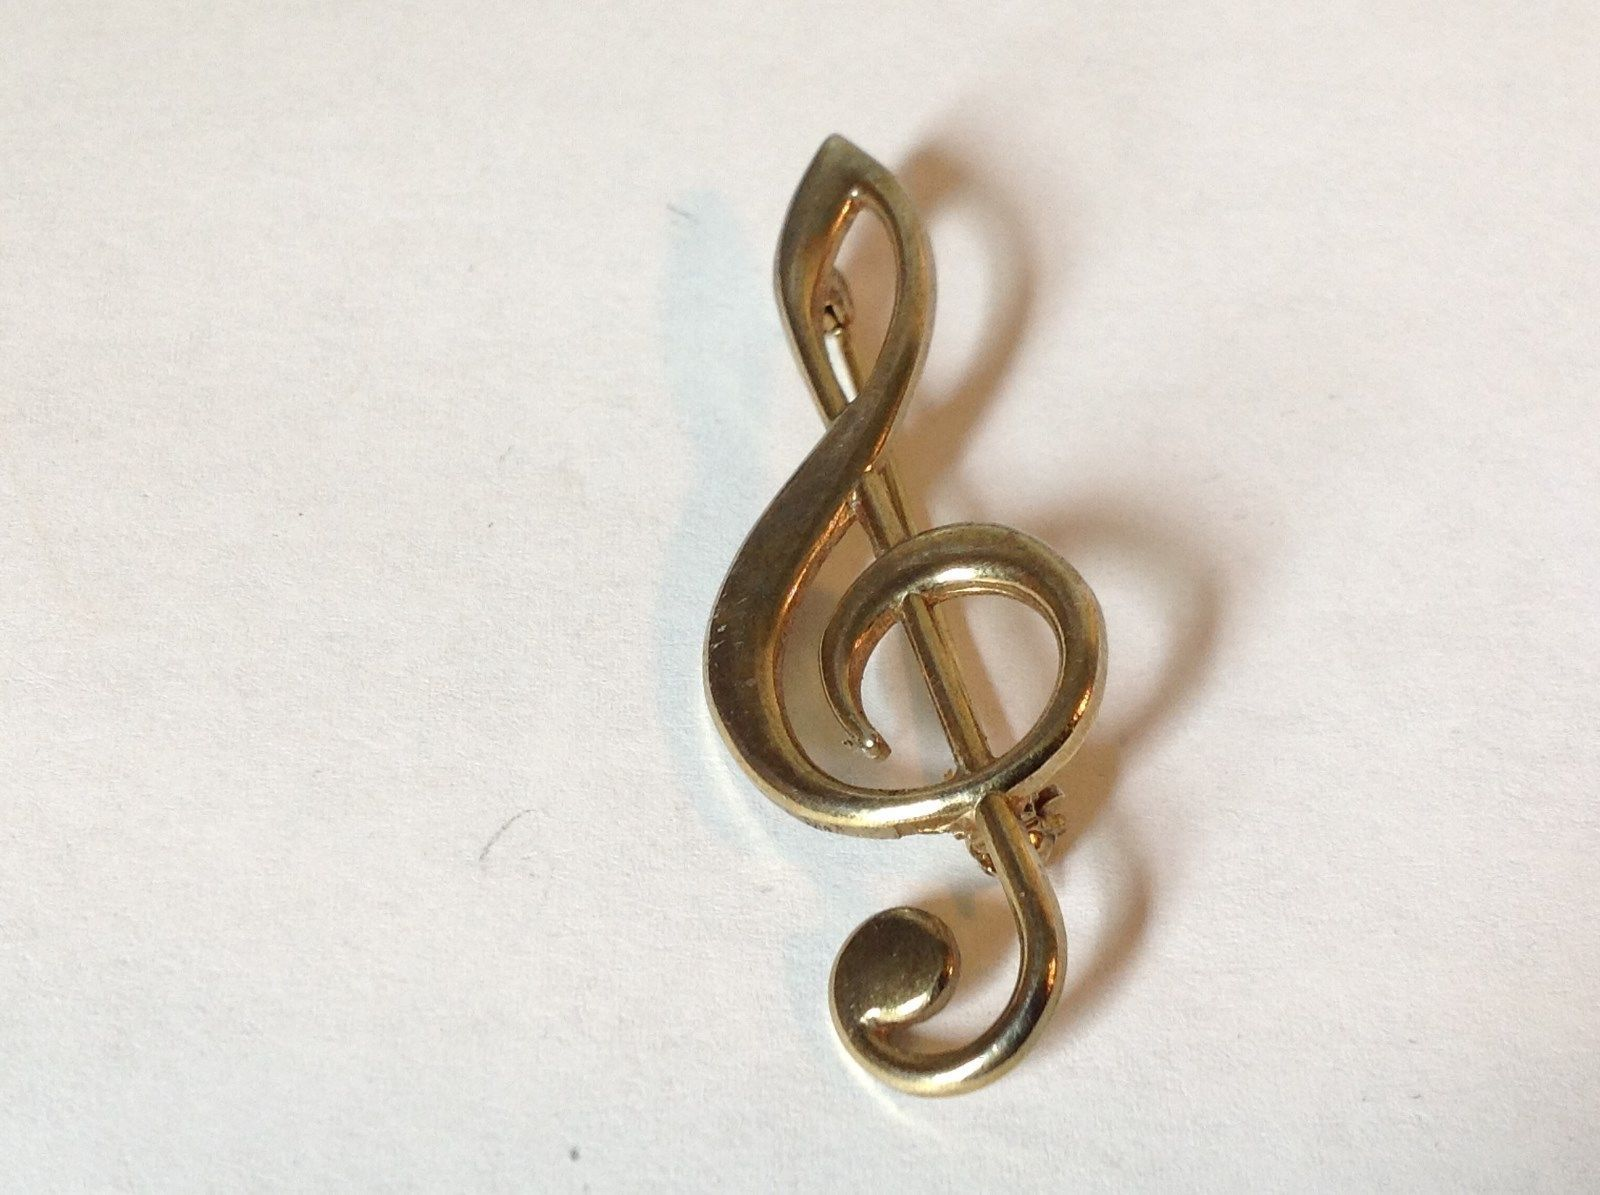 Light Gold Tone Vintage Music Clef Pin Hinge Clasp